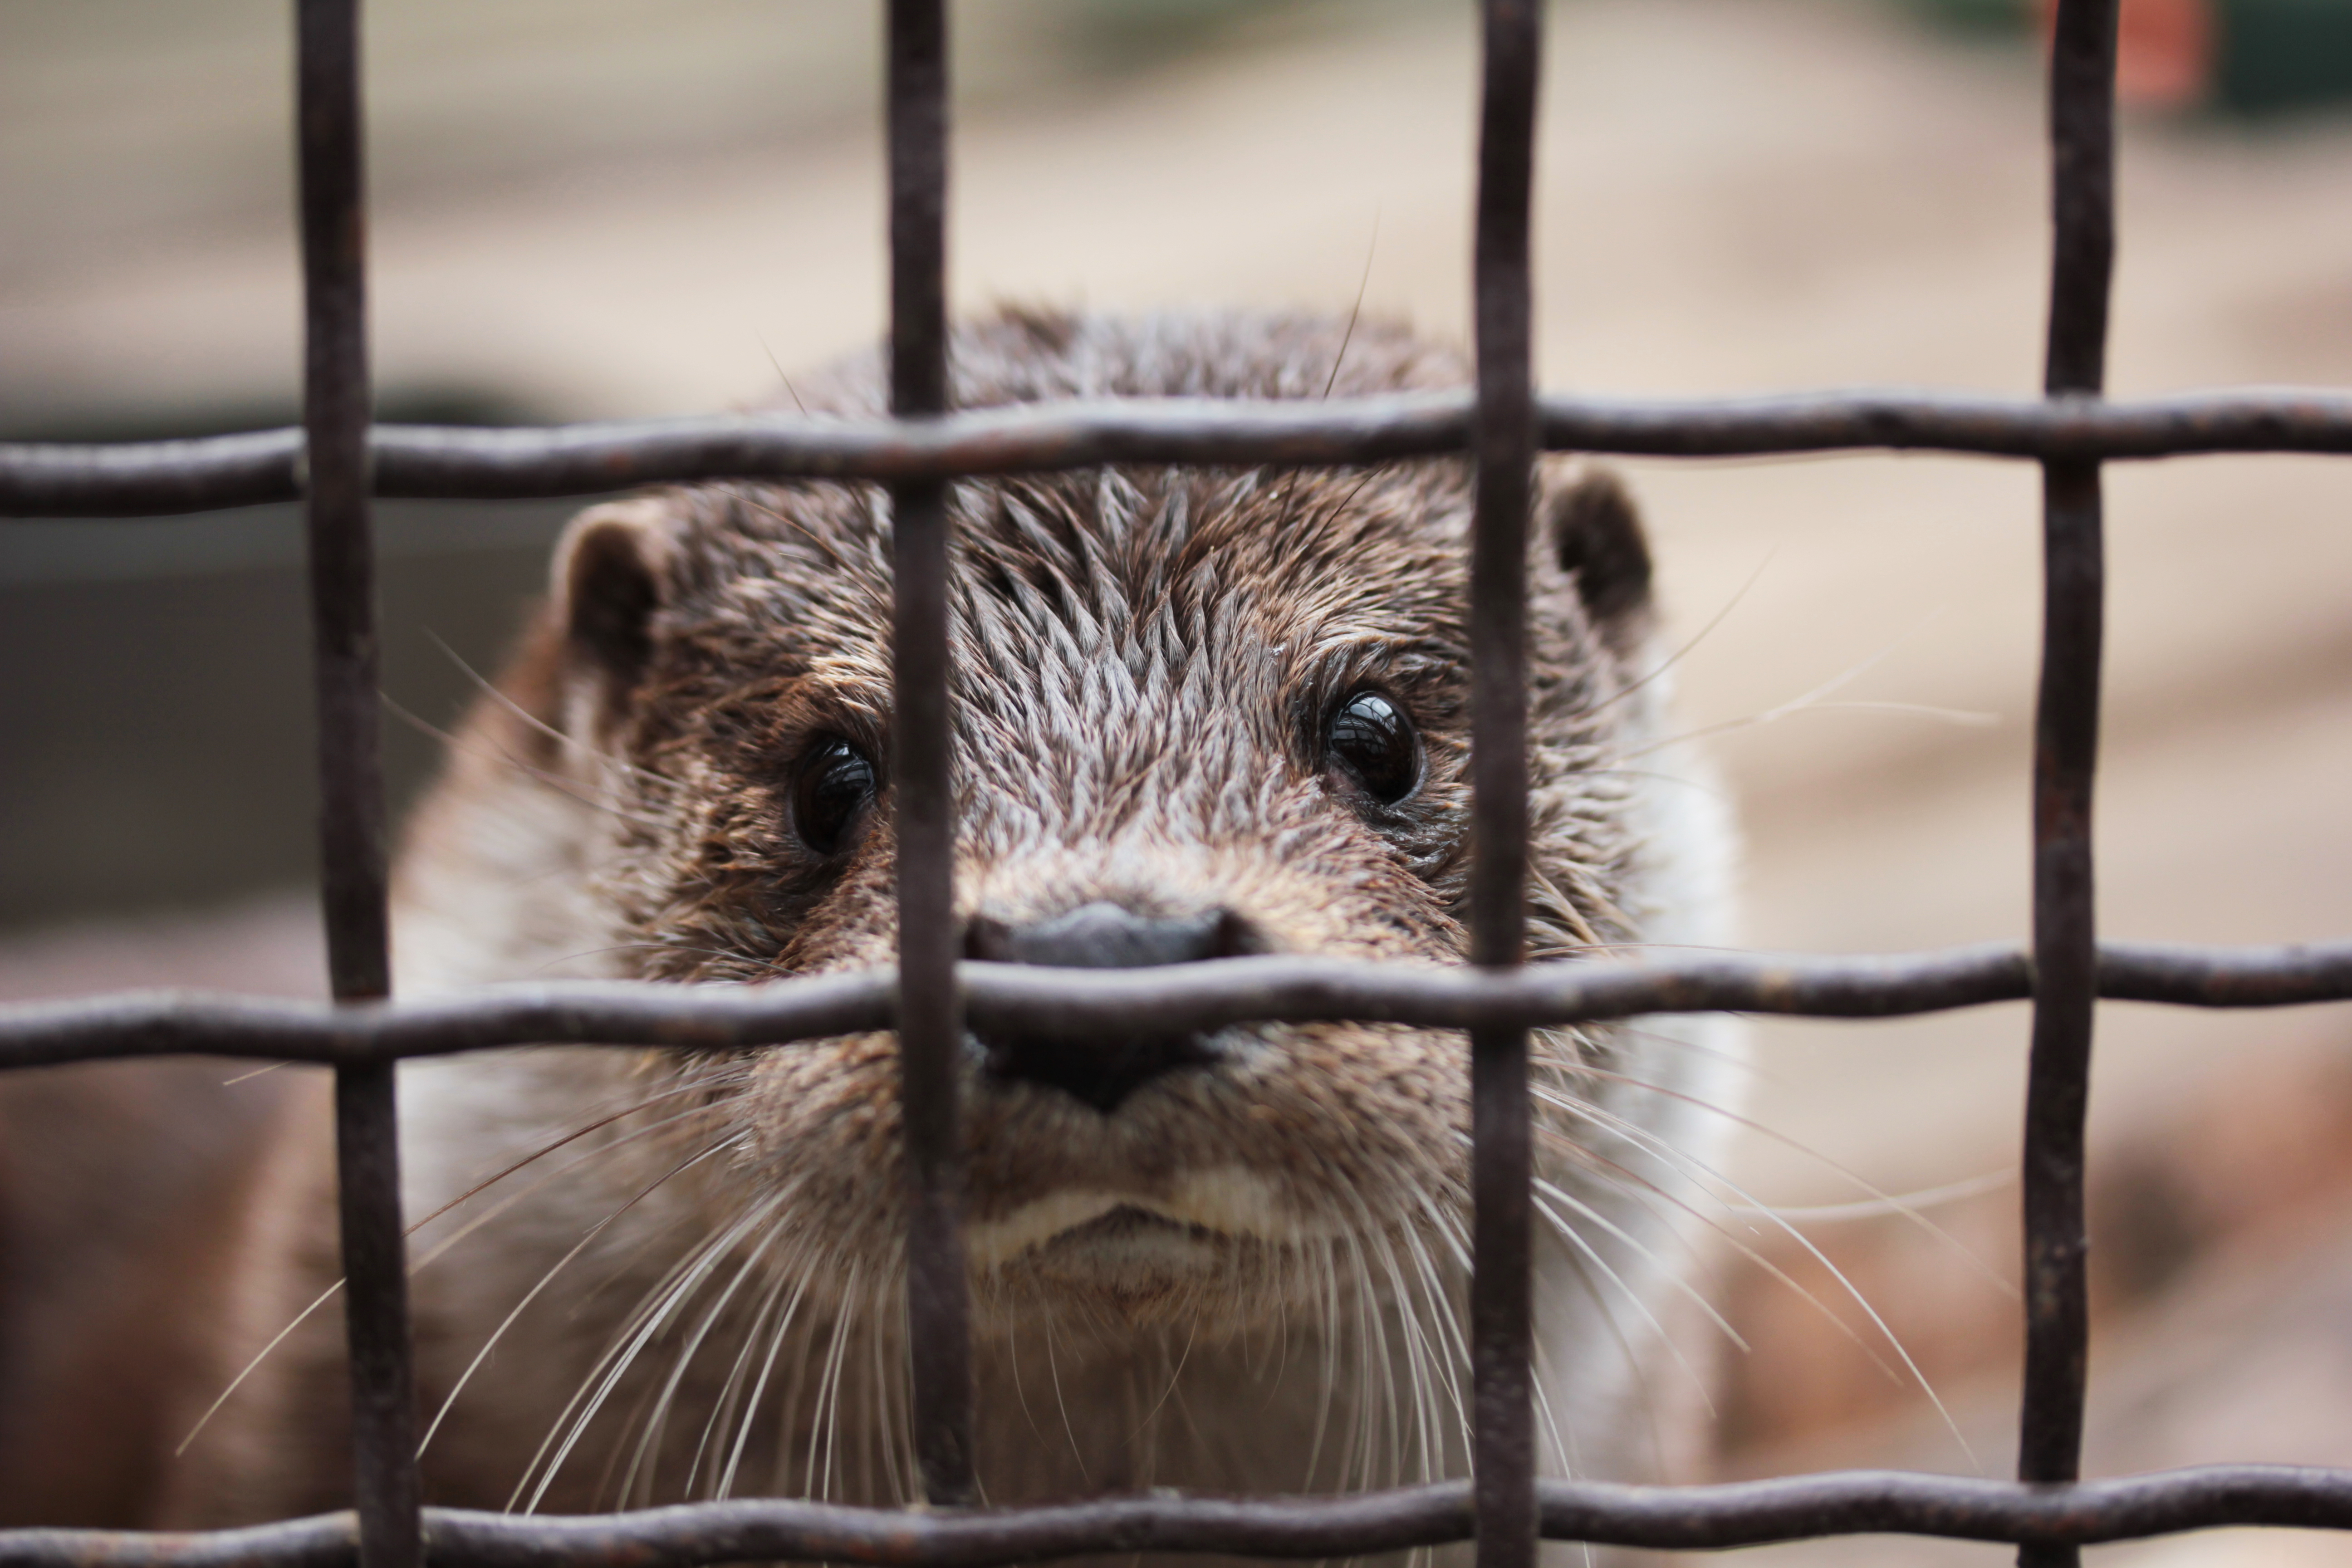 Otters behind bars